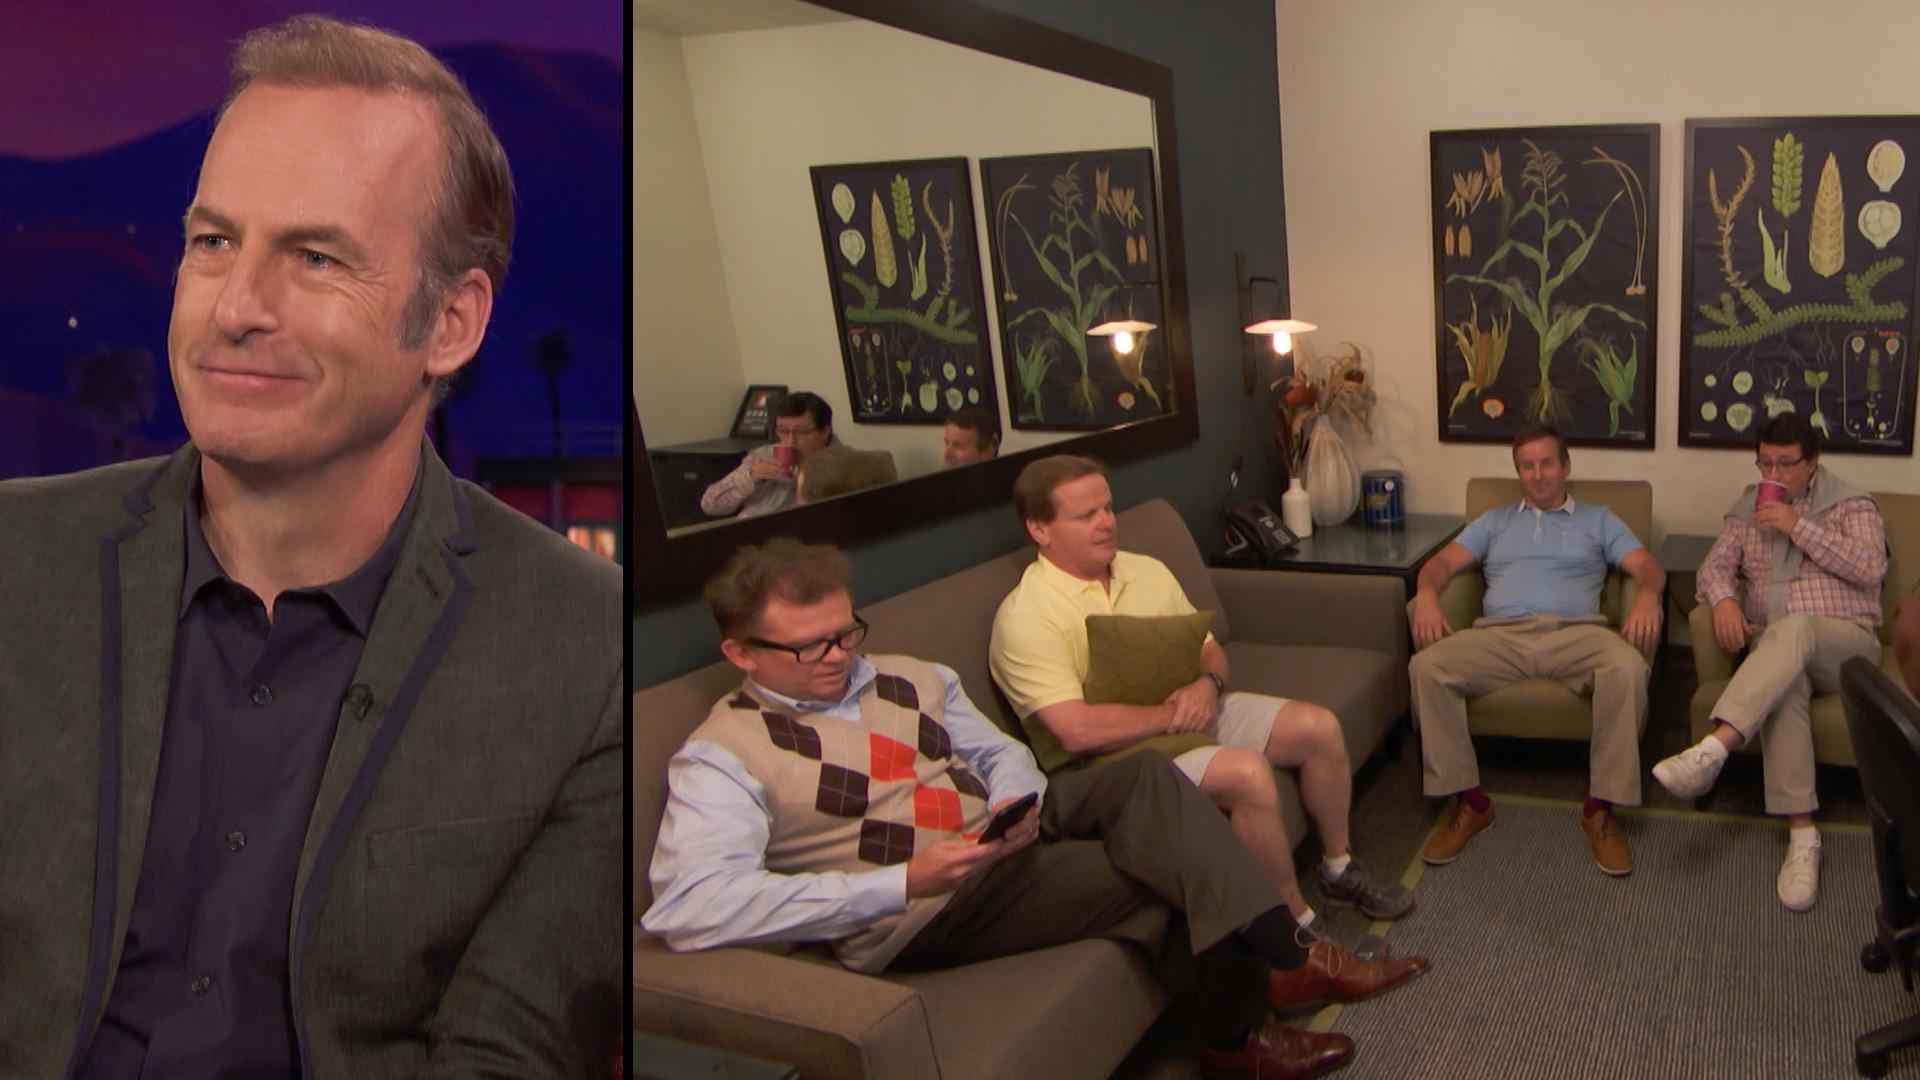 Brian Habicht, Bob Odenkirk, Alan Heitz, Doug Morency, and J.P. Giuliotti in Conan (2010)